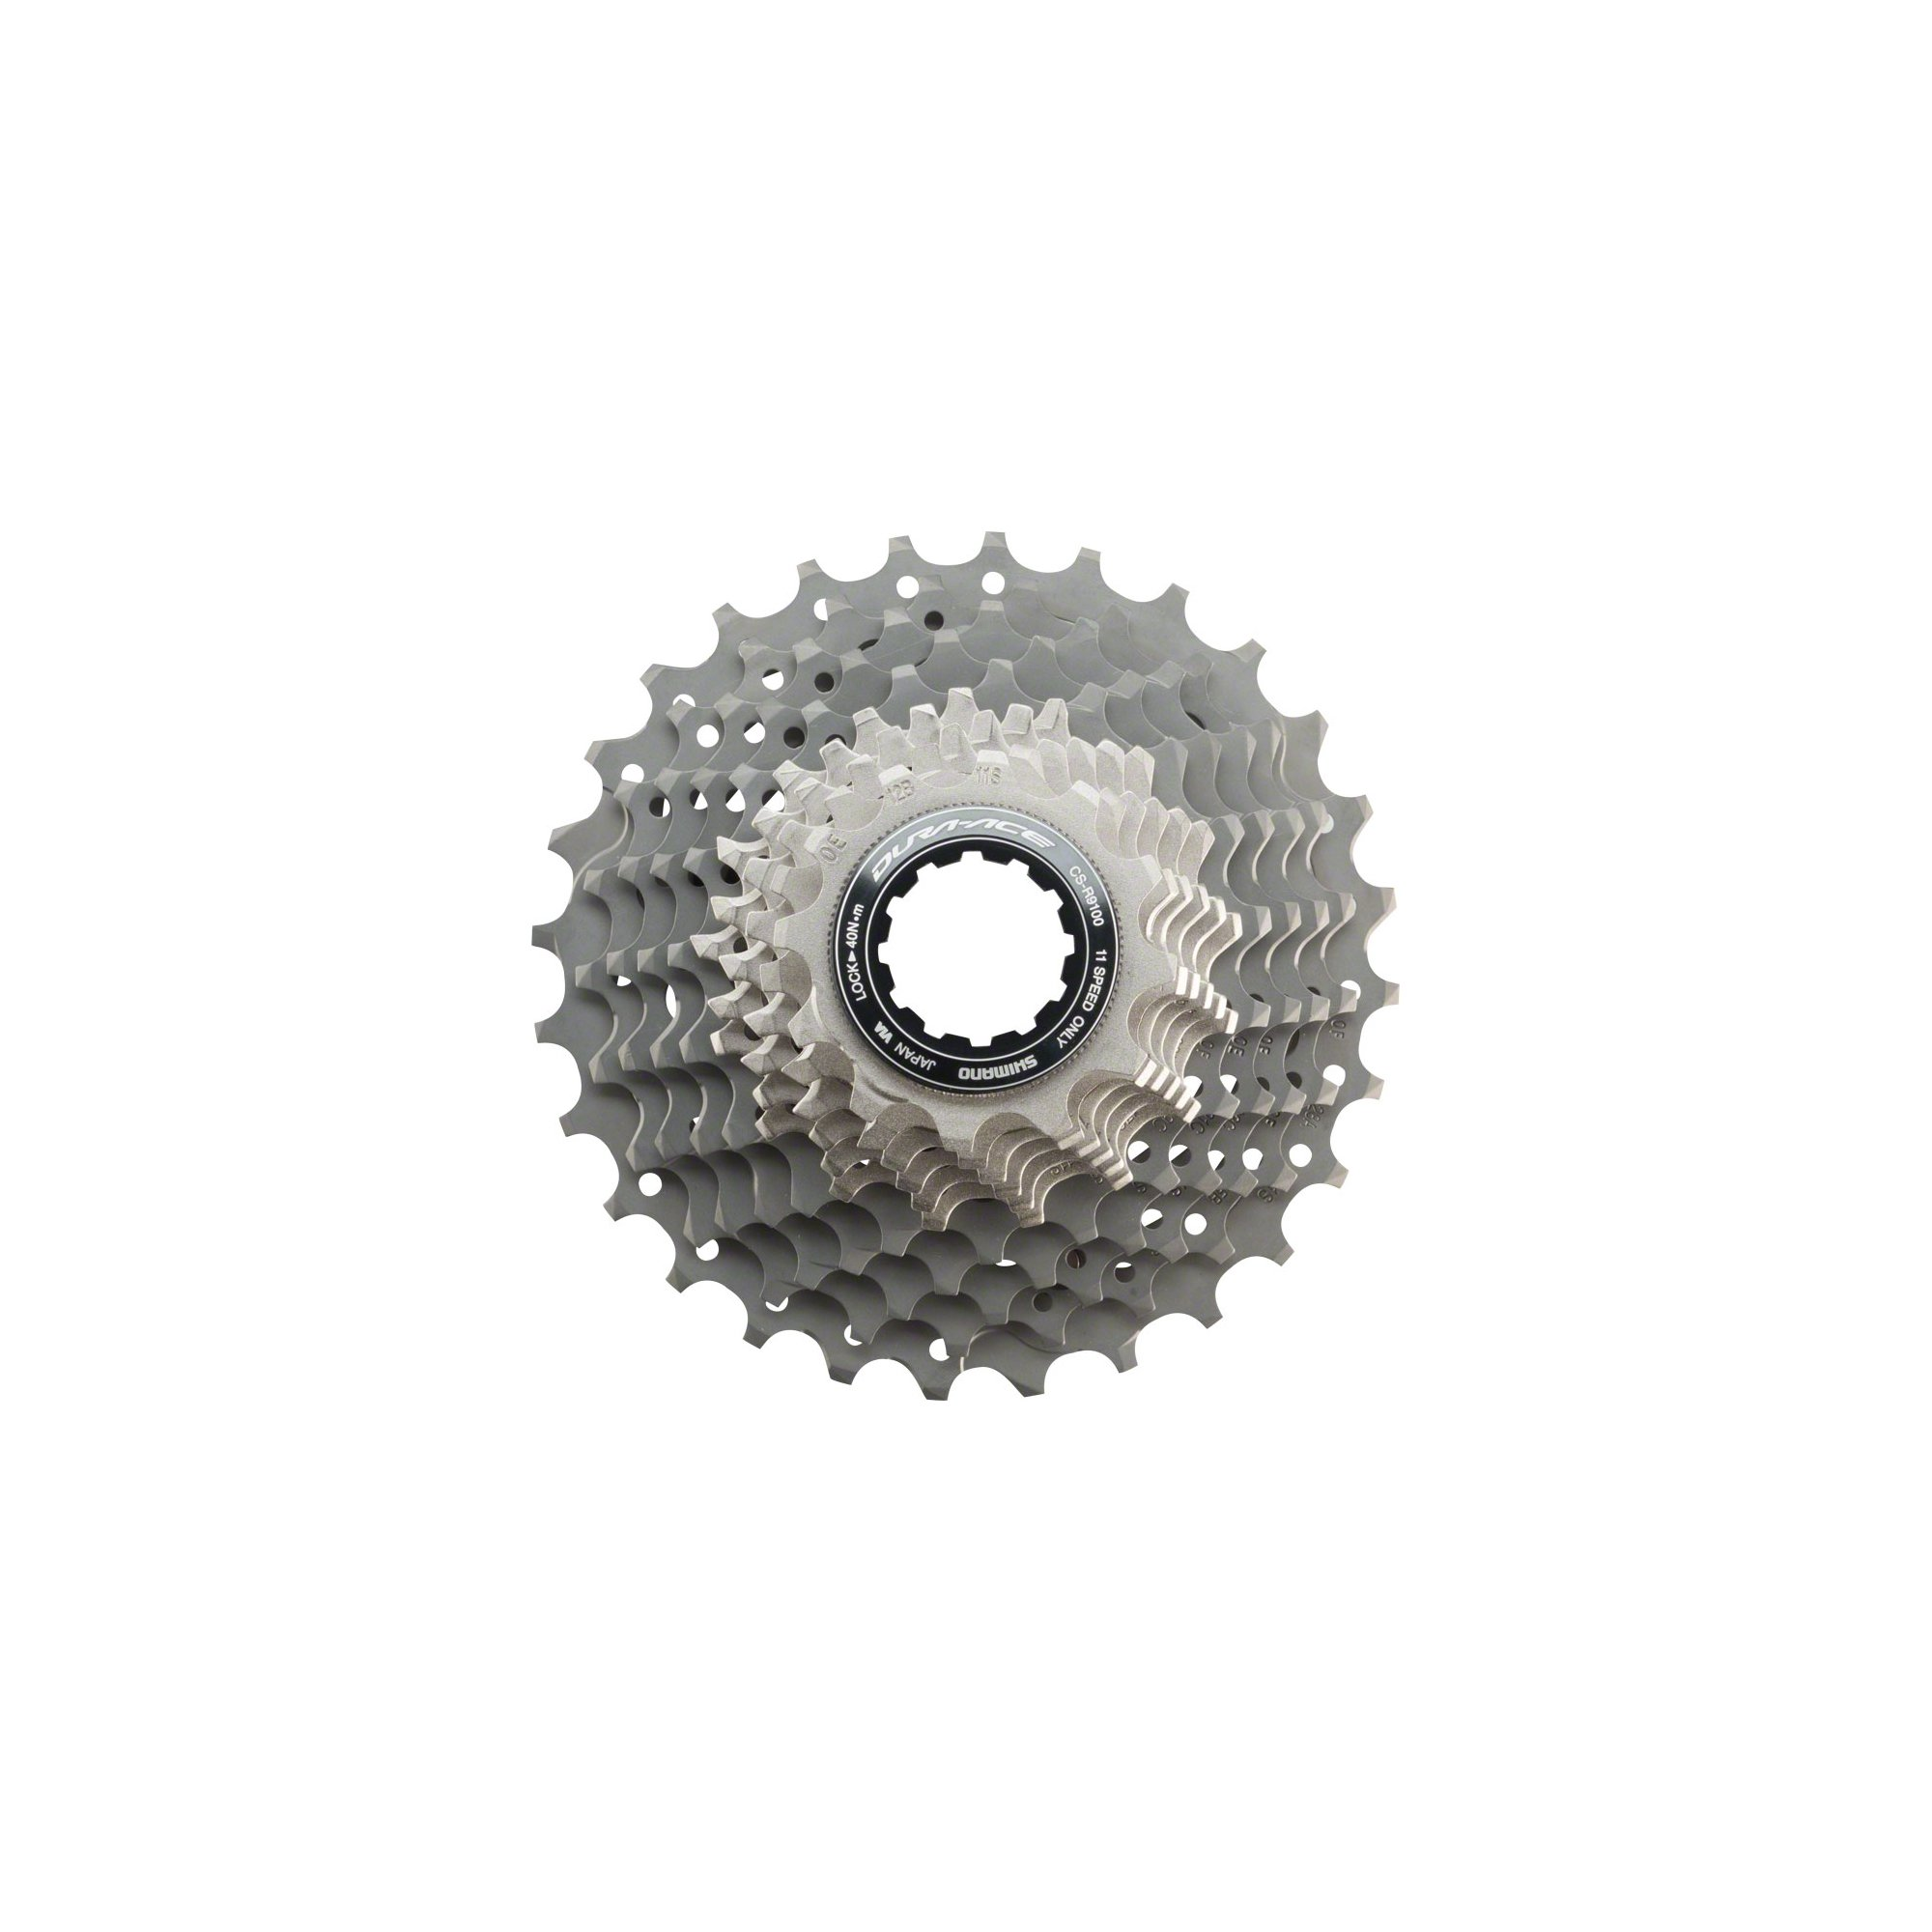 SHIMANO Dura-Ace CS-R9100 11-Speed Cassette One Color, 12-28 by SHIMANO